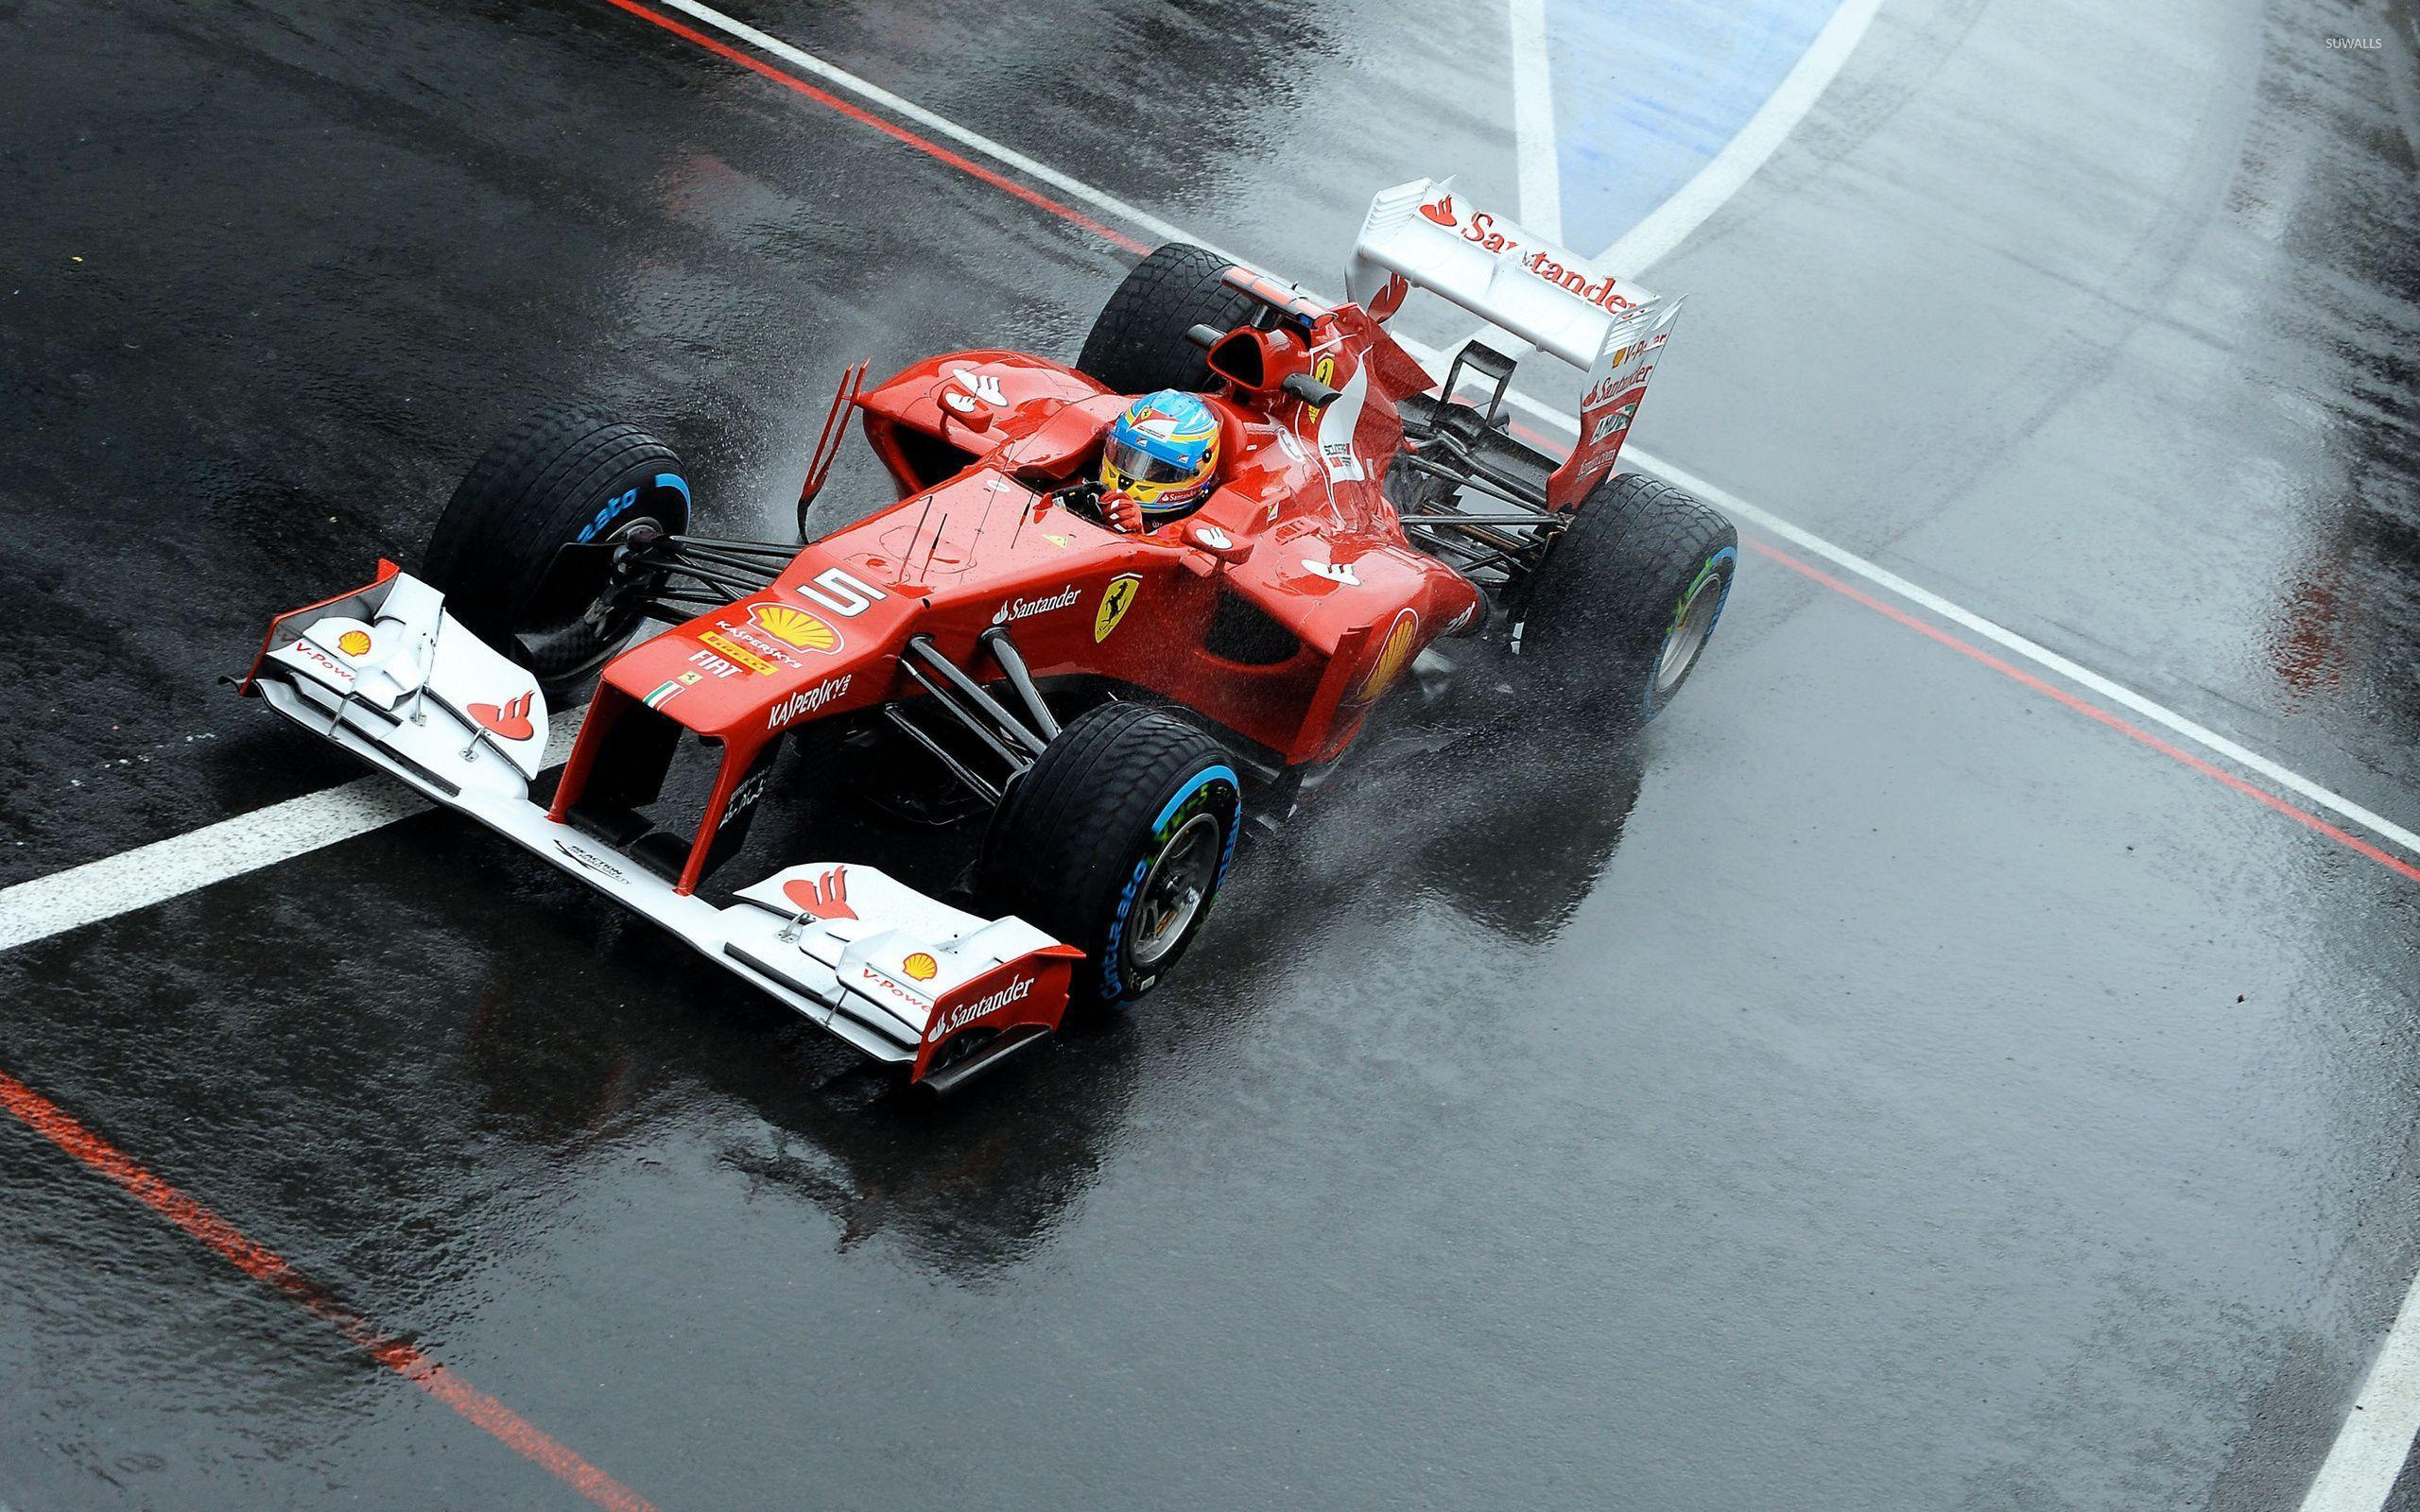 Fernando Alonso during a race in a Scuderia Ferrari wallpapers